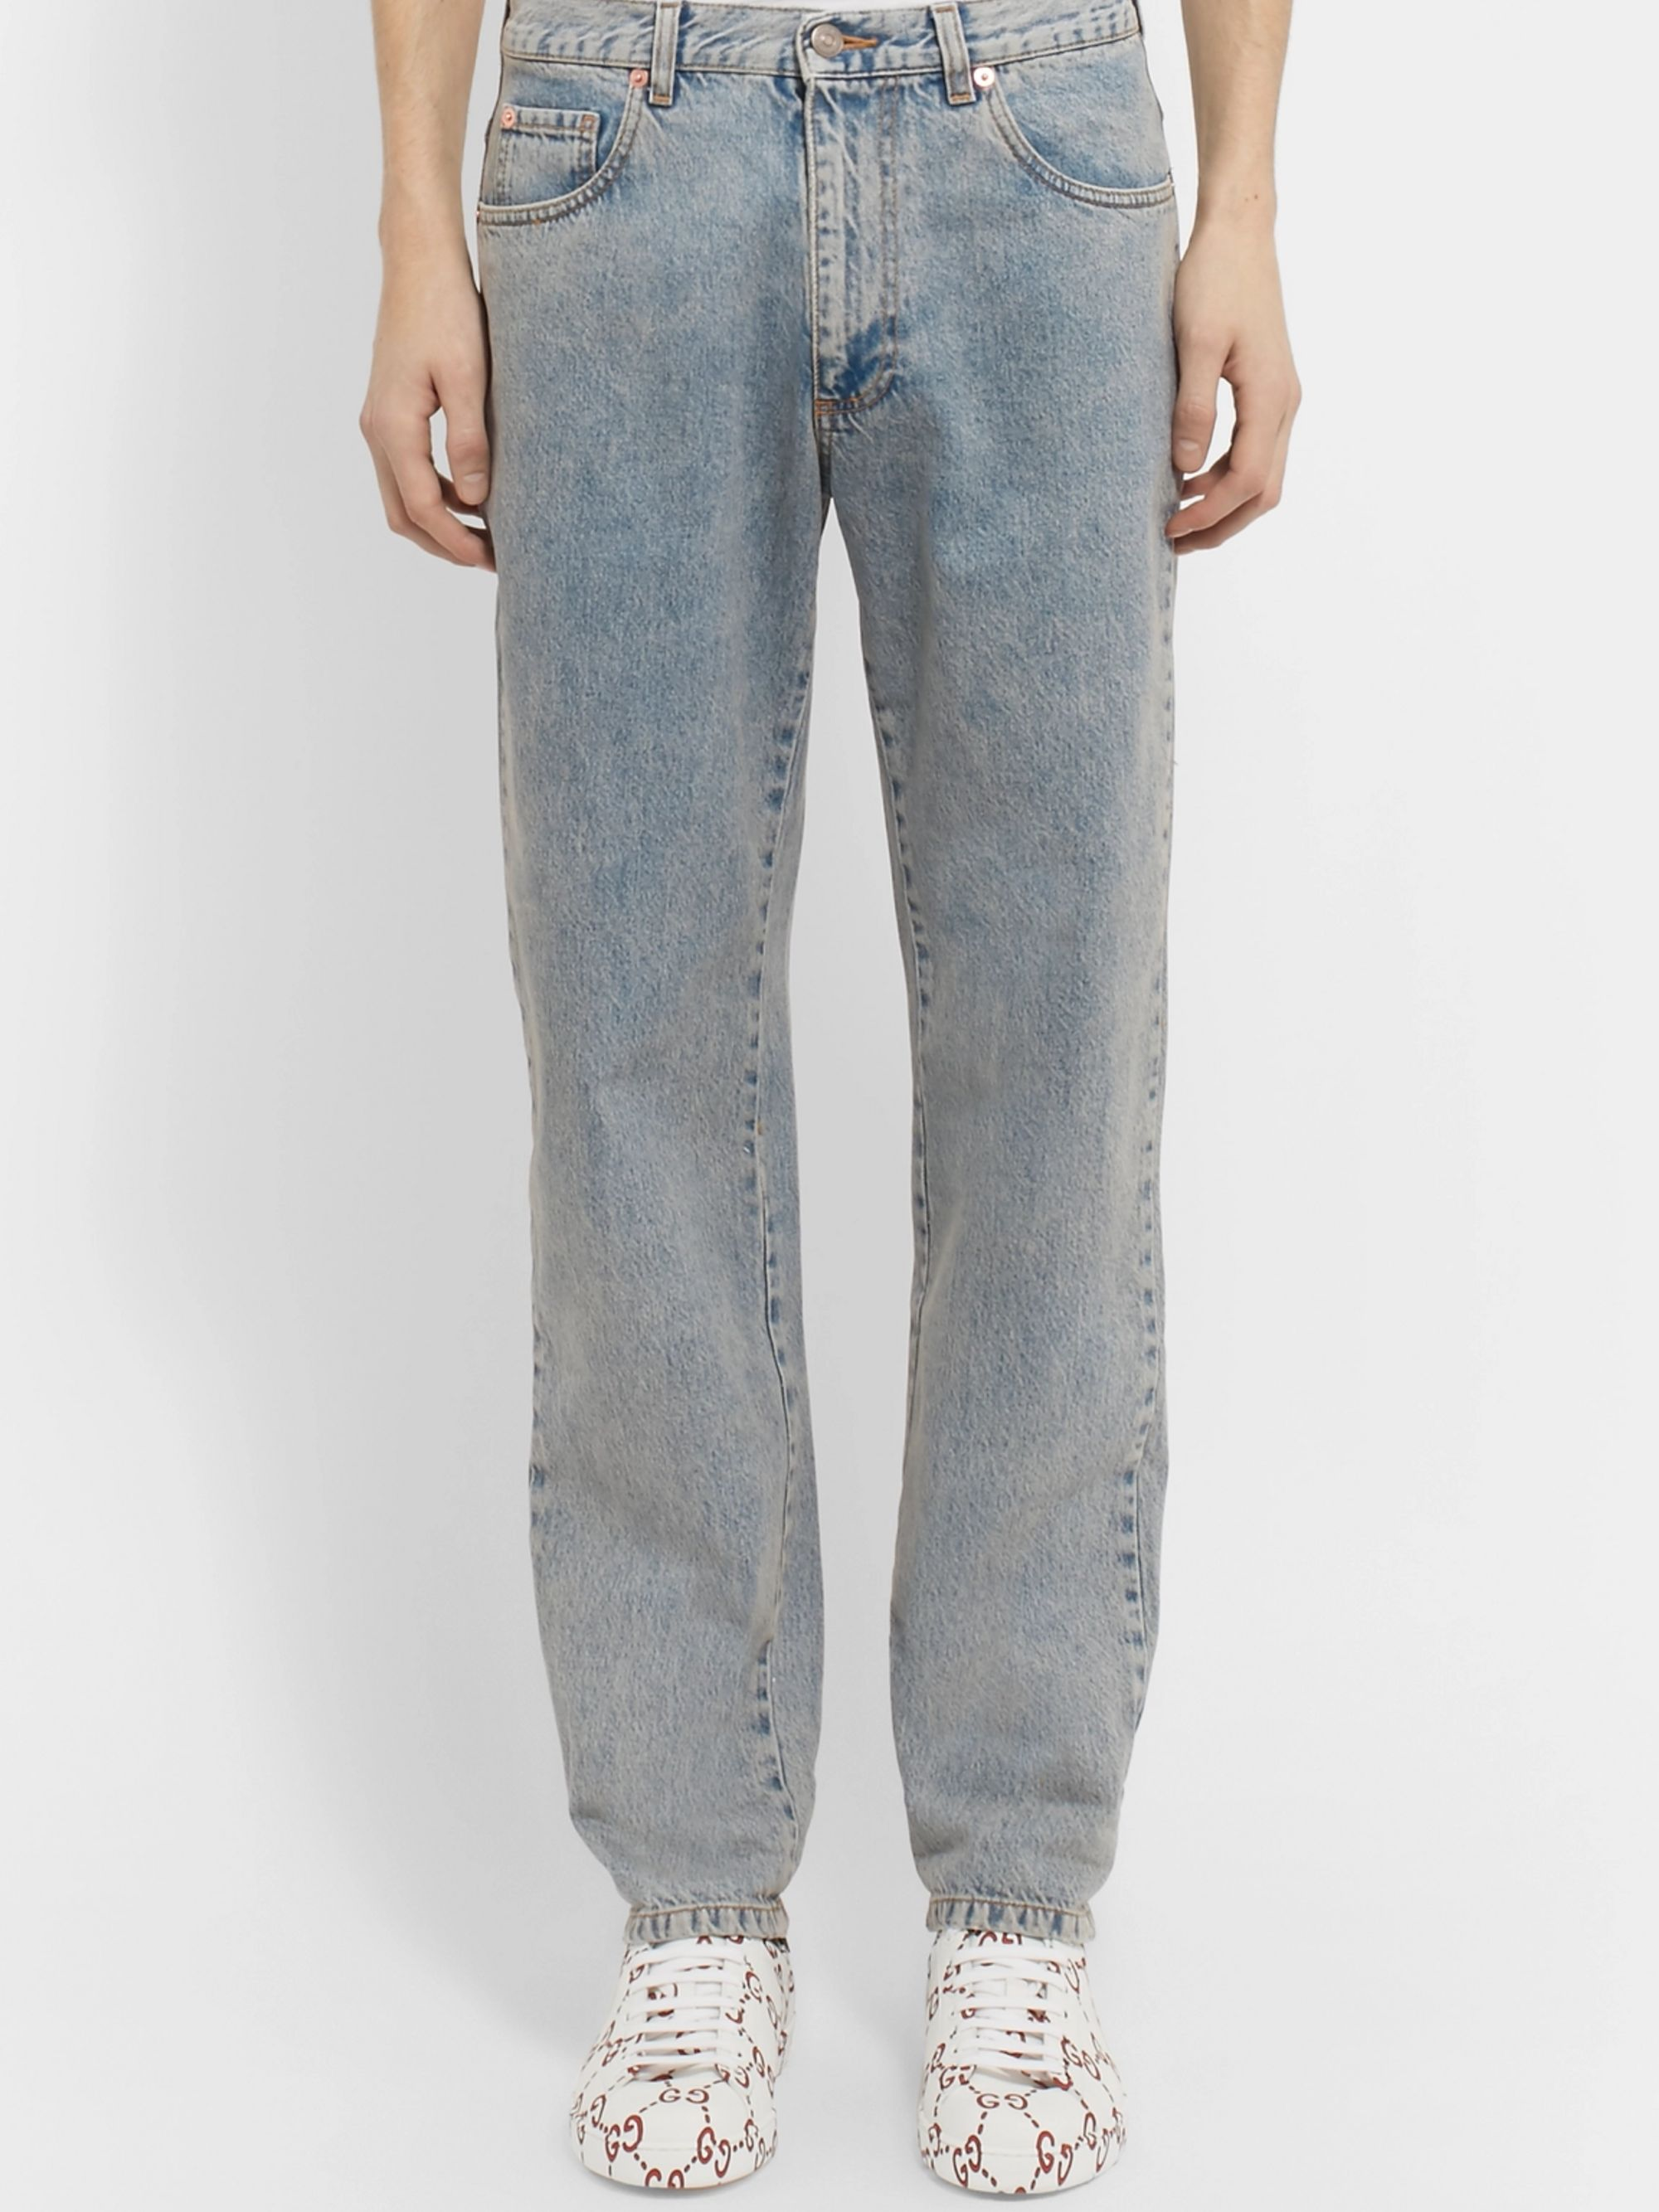 Gucci Printed Washed-Denim Jeans